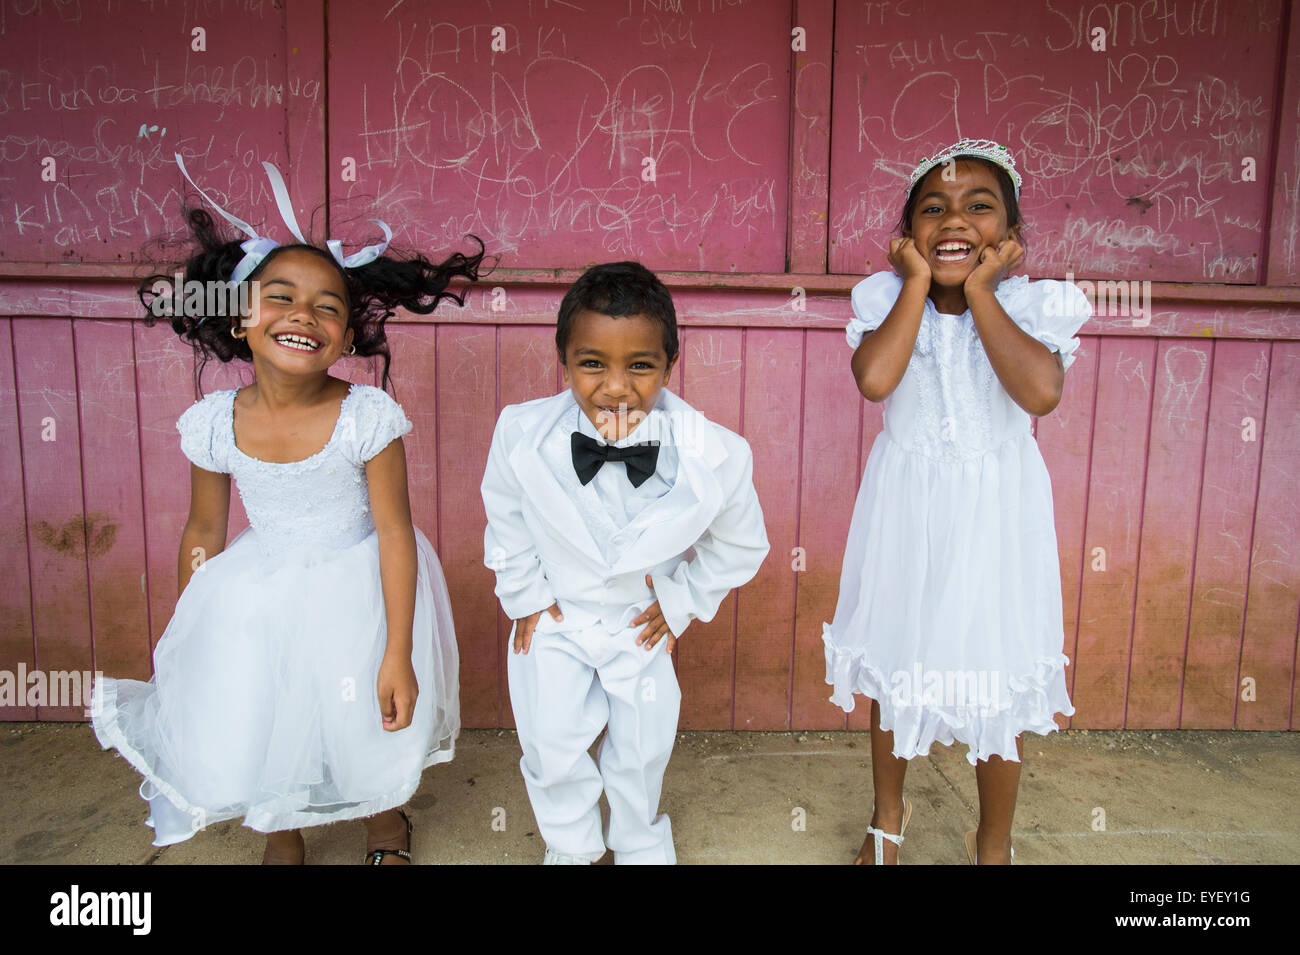 Children dressed in white formal wear against a red wall; Hapai Island, Tonga - Stock Image